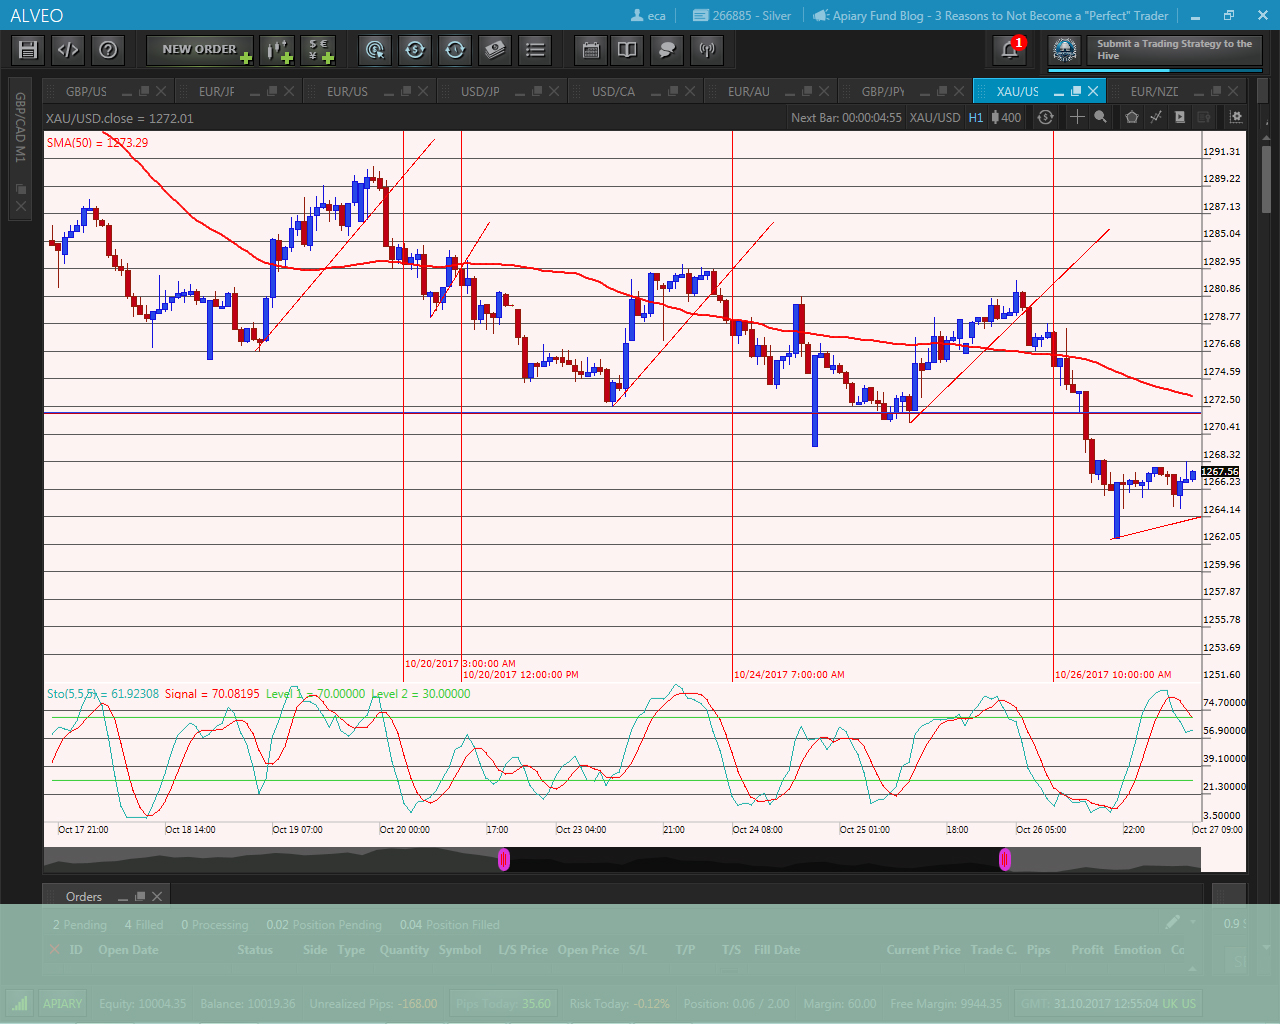 Day trading silver strategies